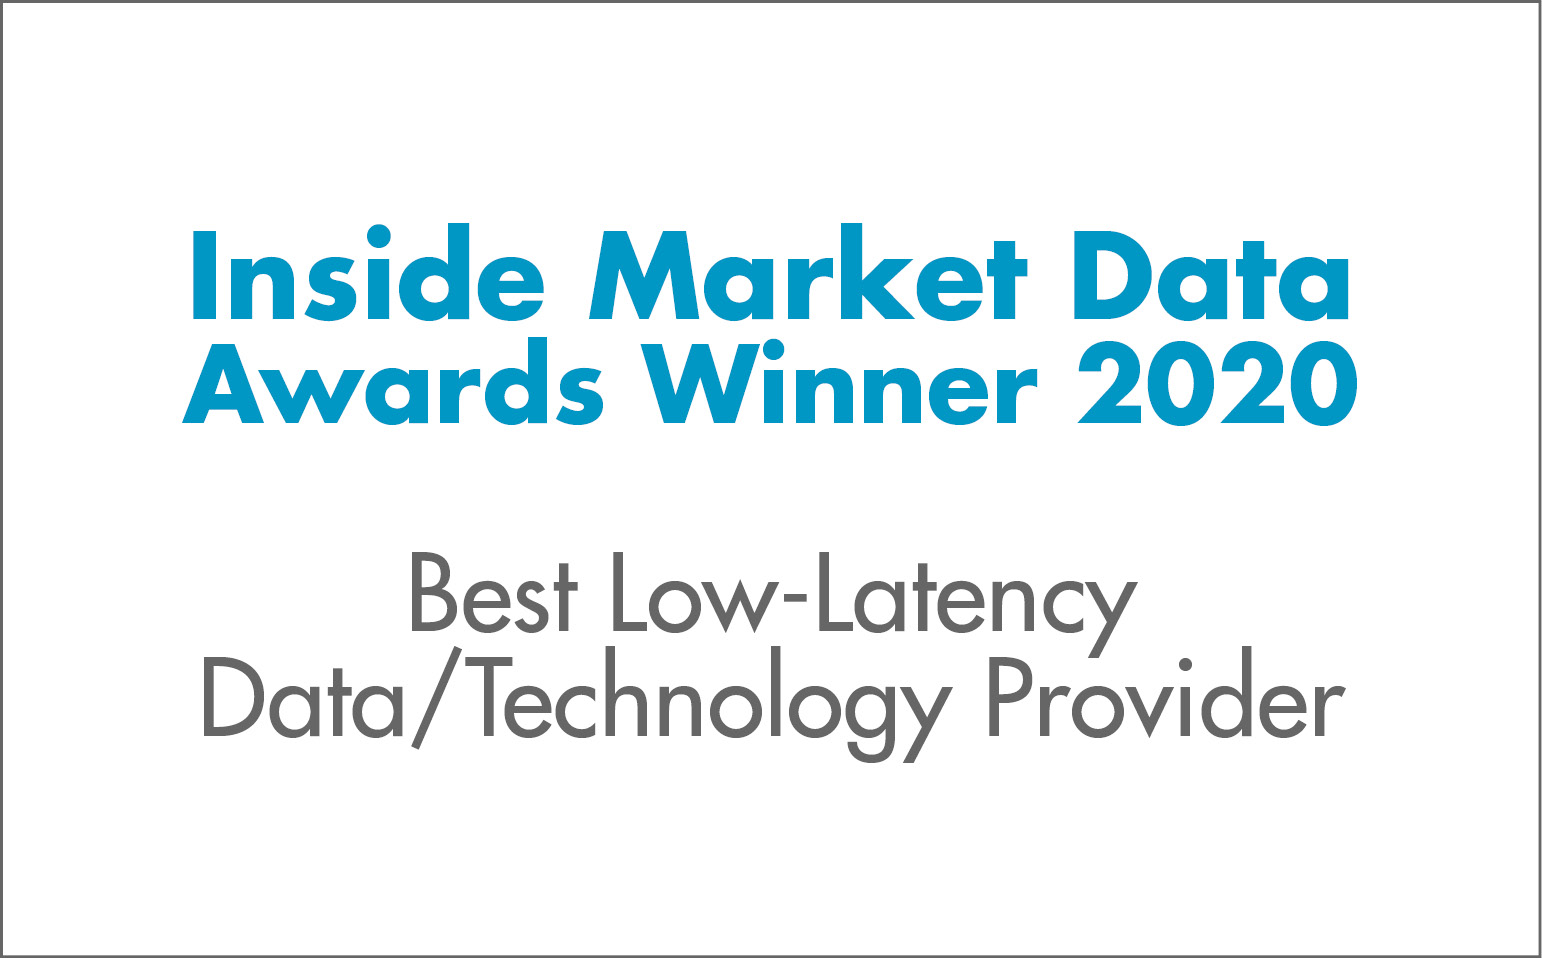 Best Low-Latency Data/Technology Provider